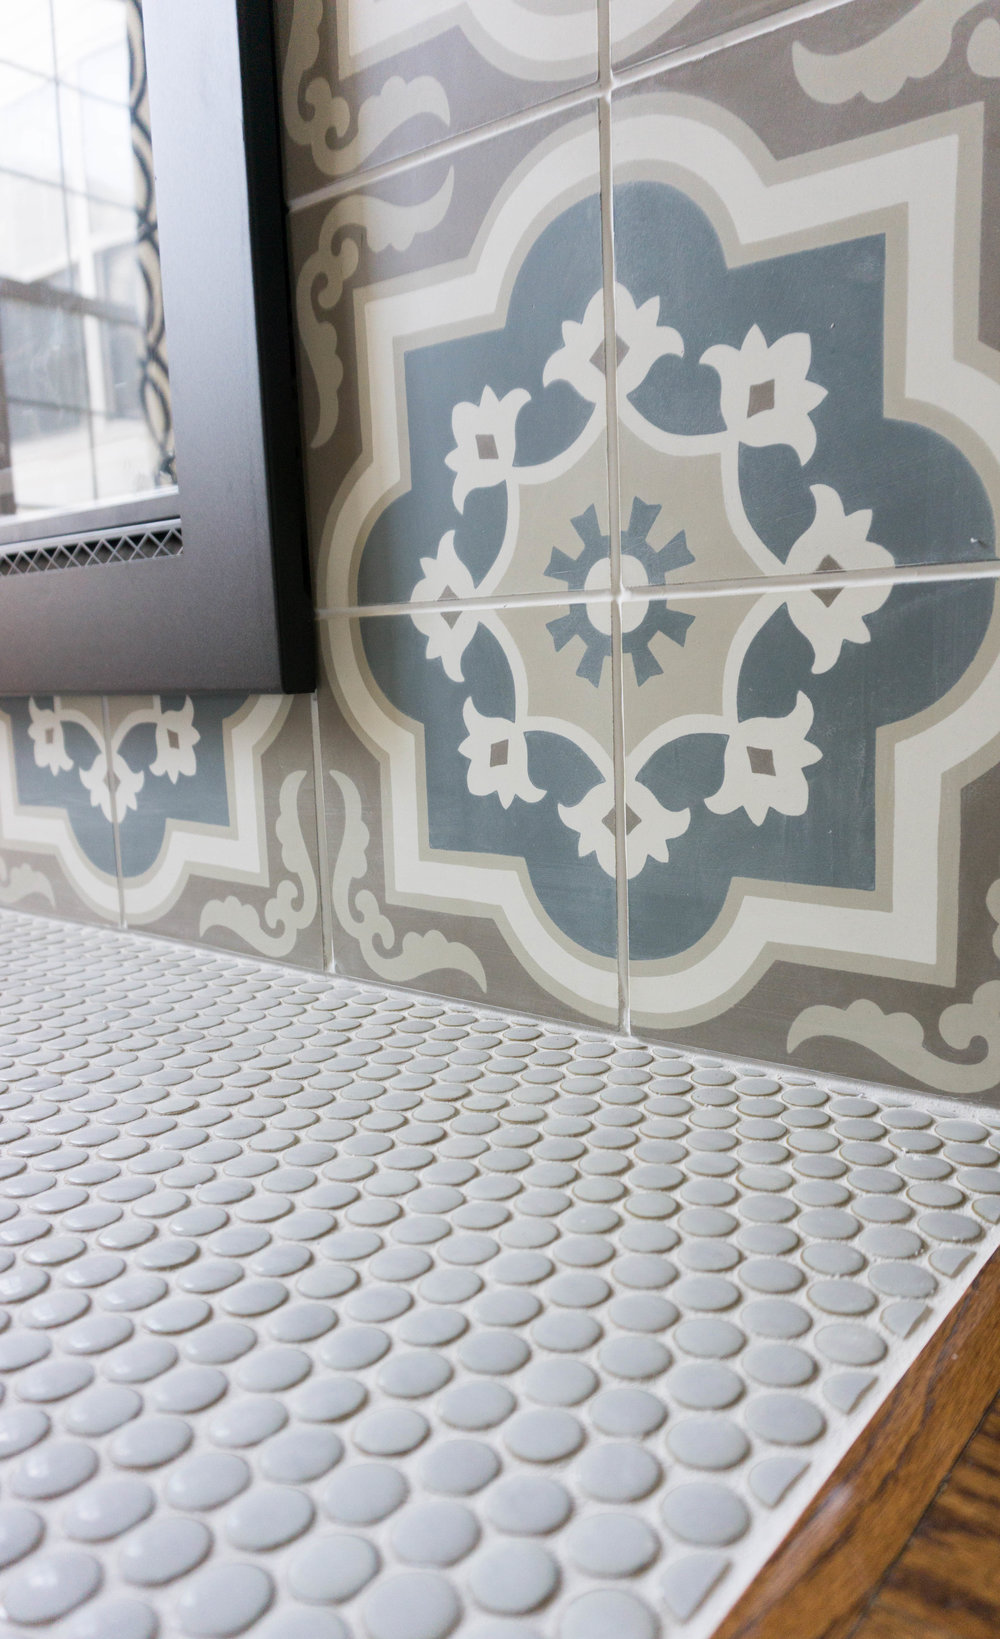 How pretty is this penny tile and patterned ceramic tile combo?